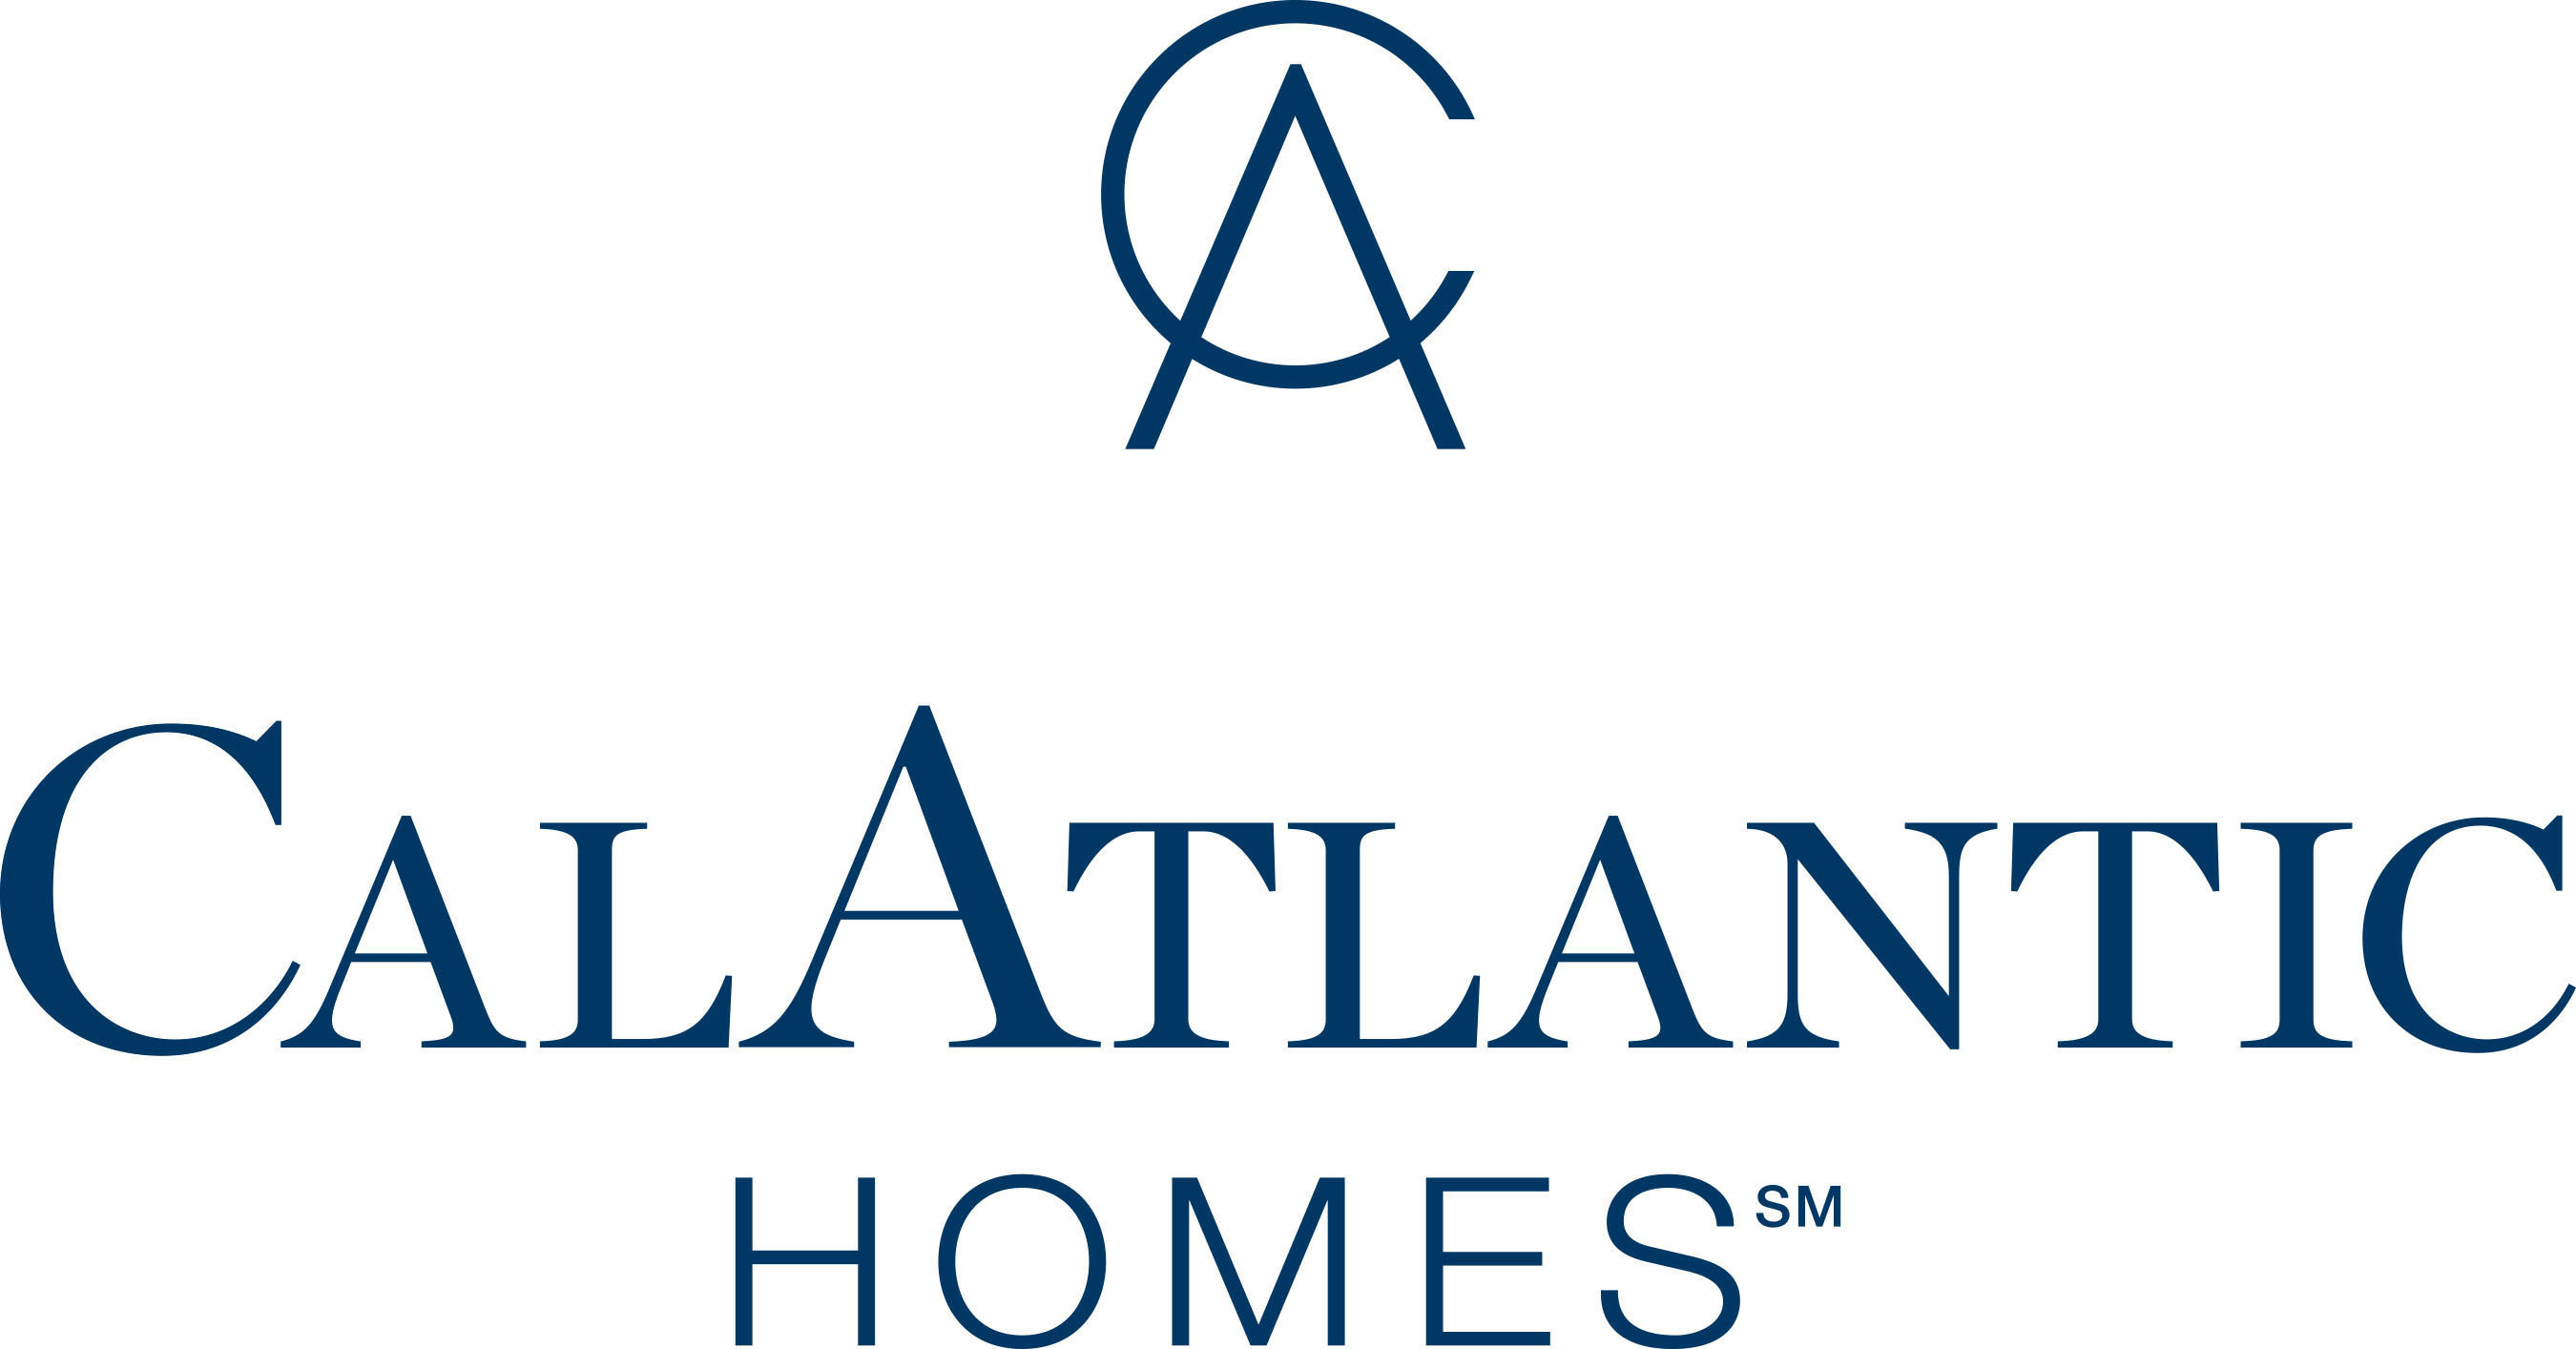 calatlantic homes introduces new boutique single family home designs at tavara ridge in san diego ca - Home Design San Diego